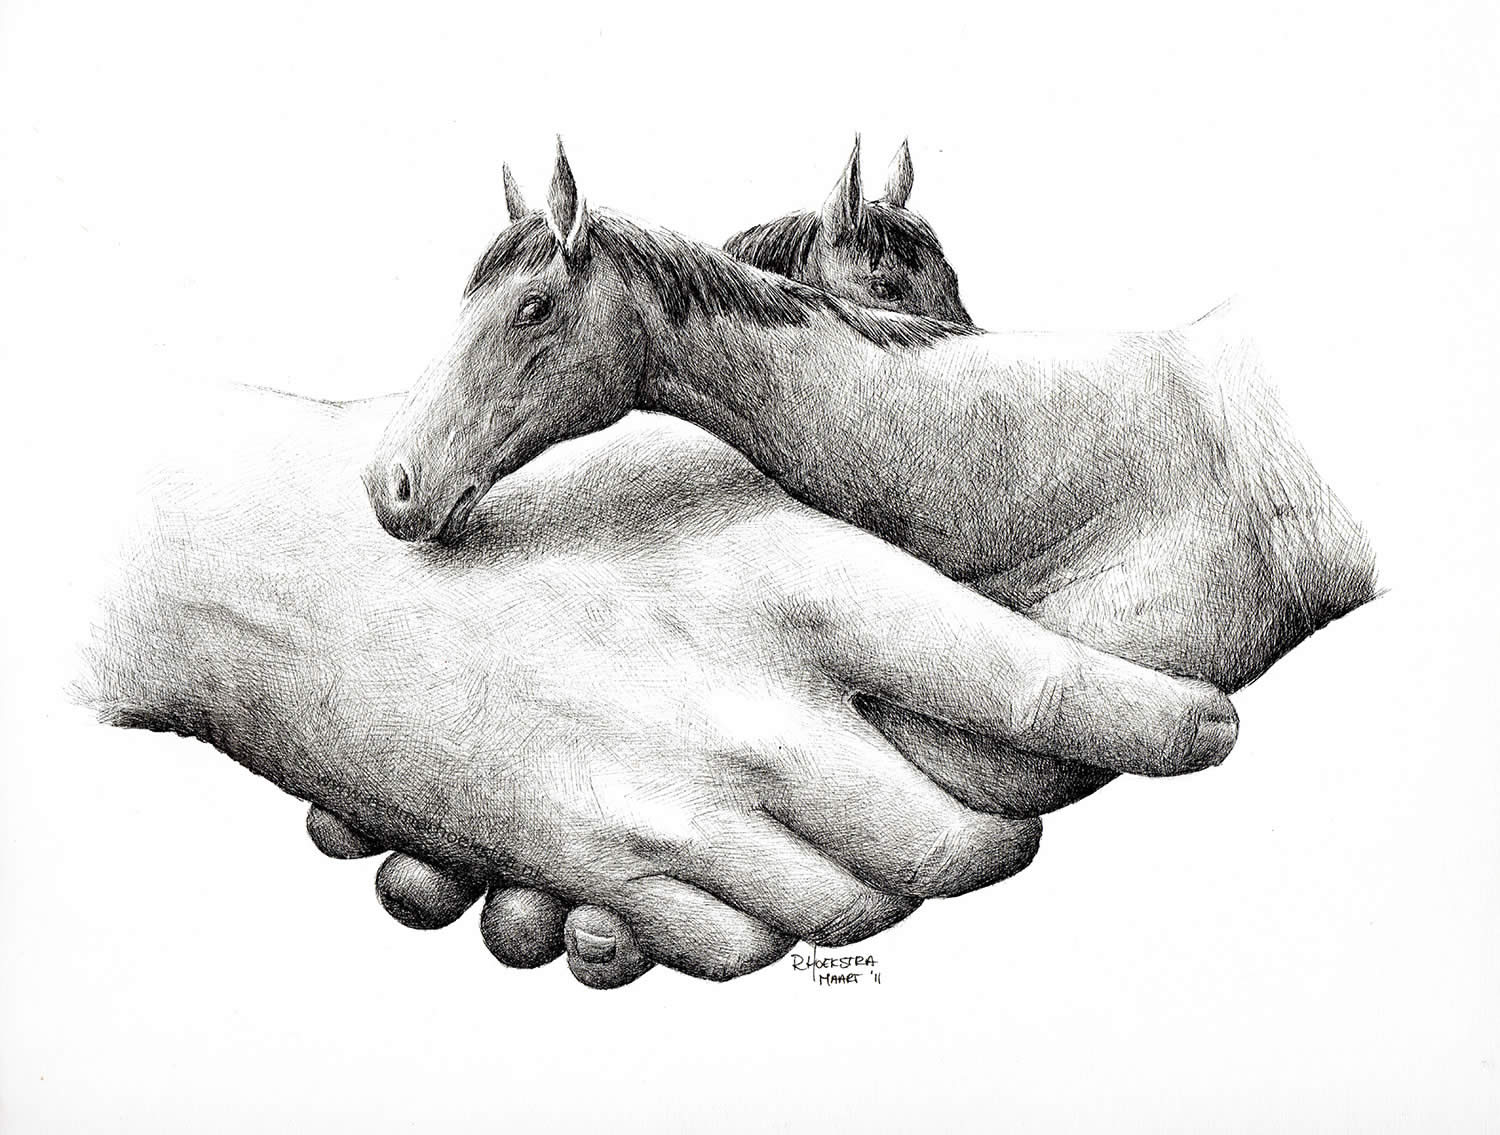 horse hand shake by redmer hoekstra